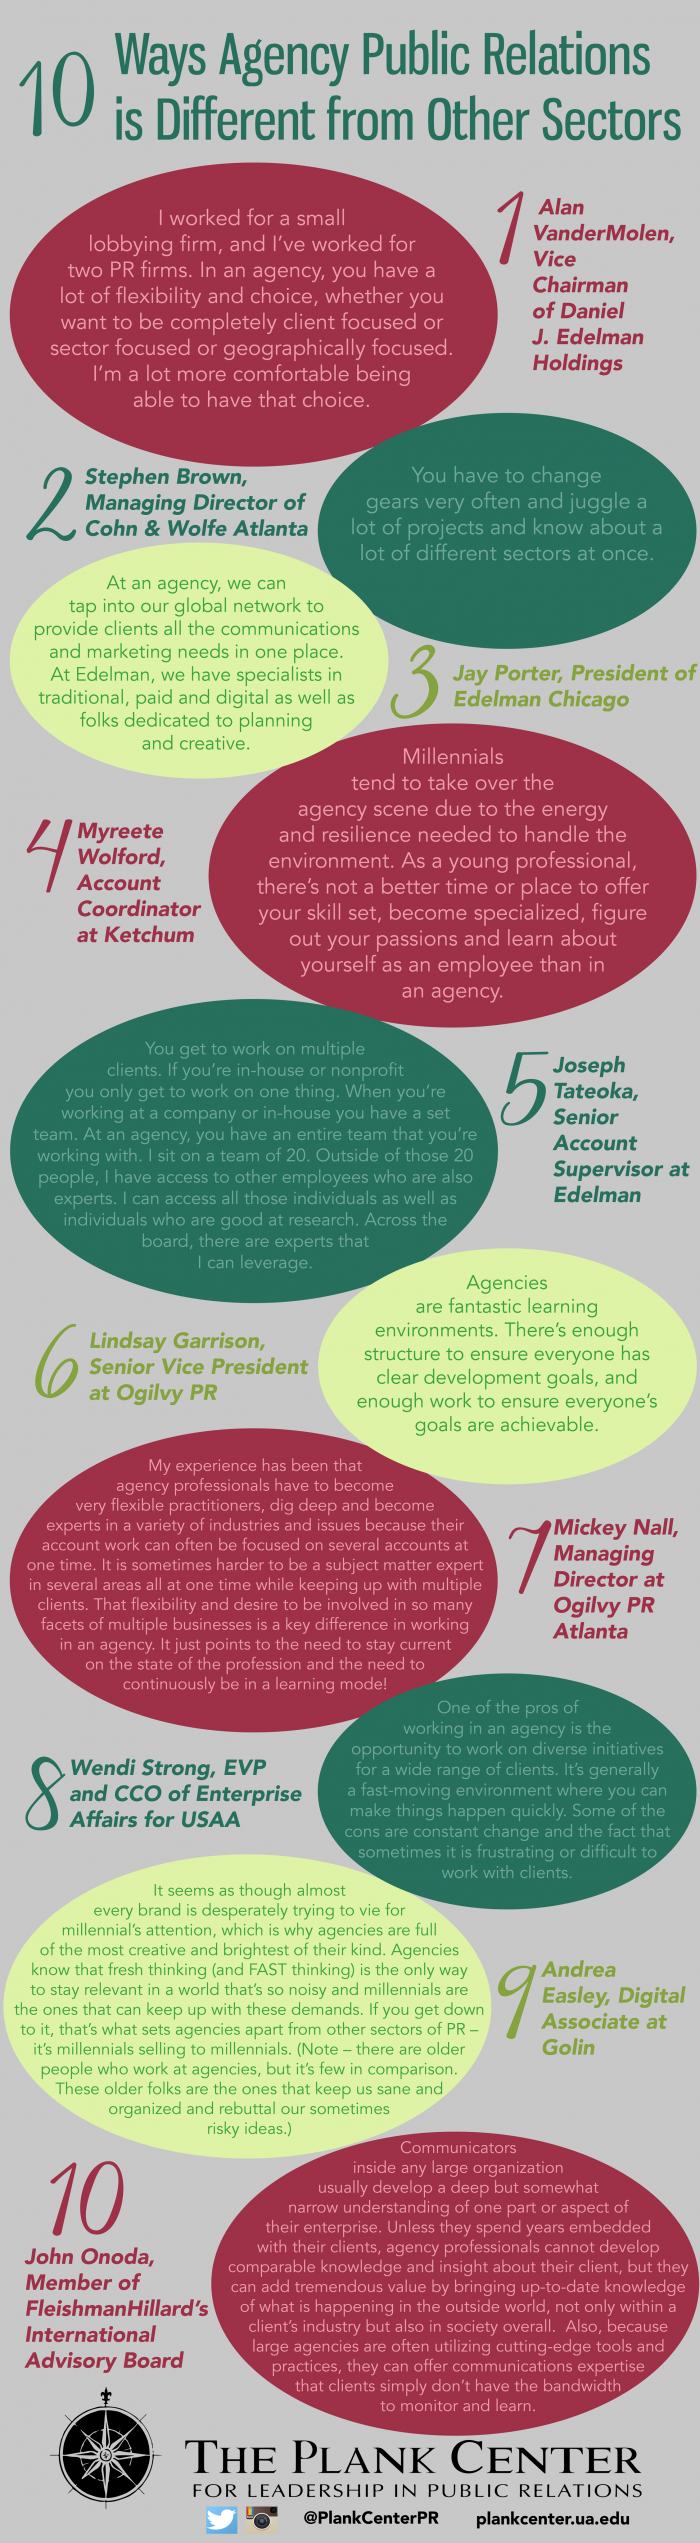 Infographic: 10-Ways-Agency-PR-is-Different-from-Other-Sectors